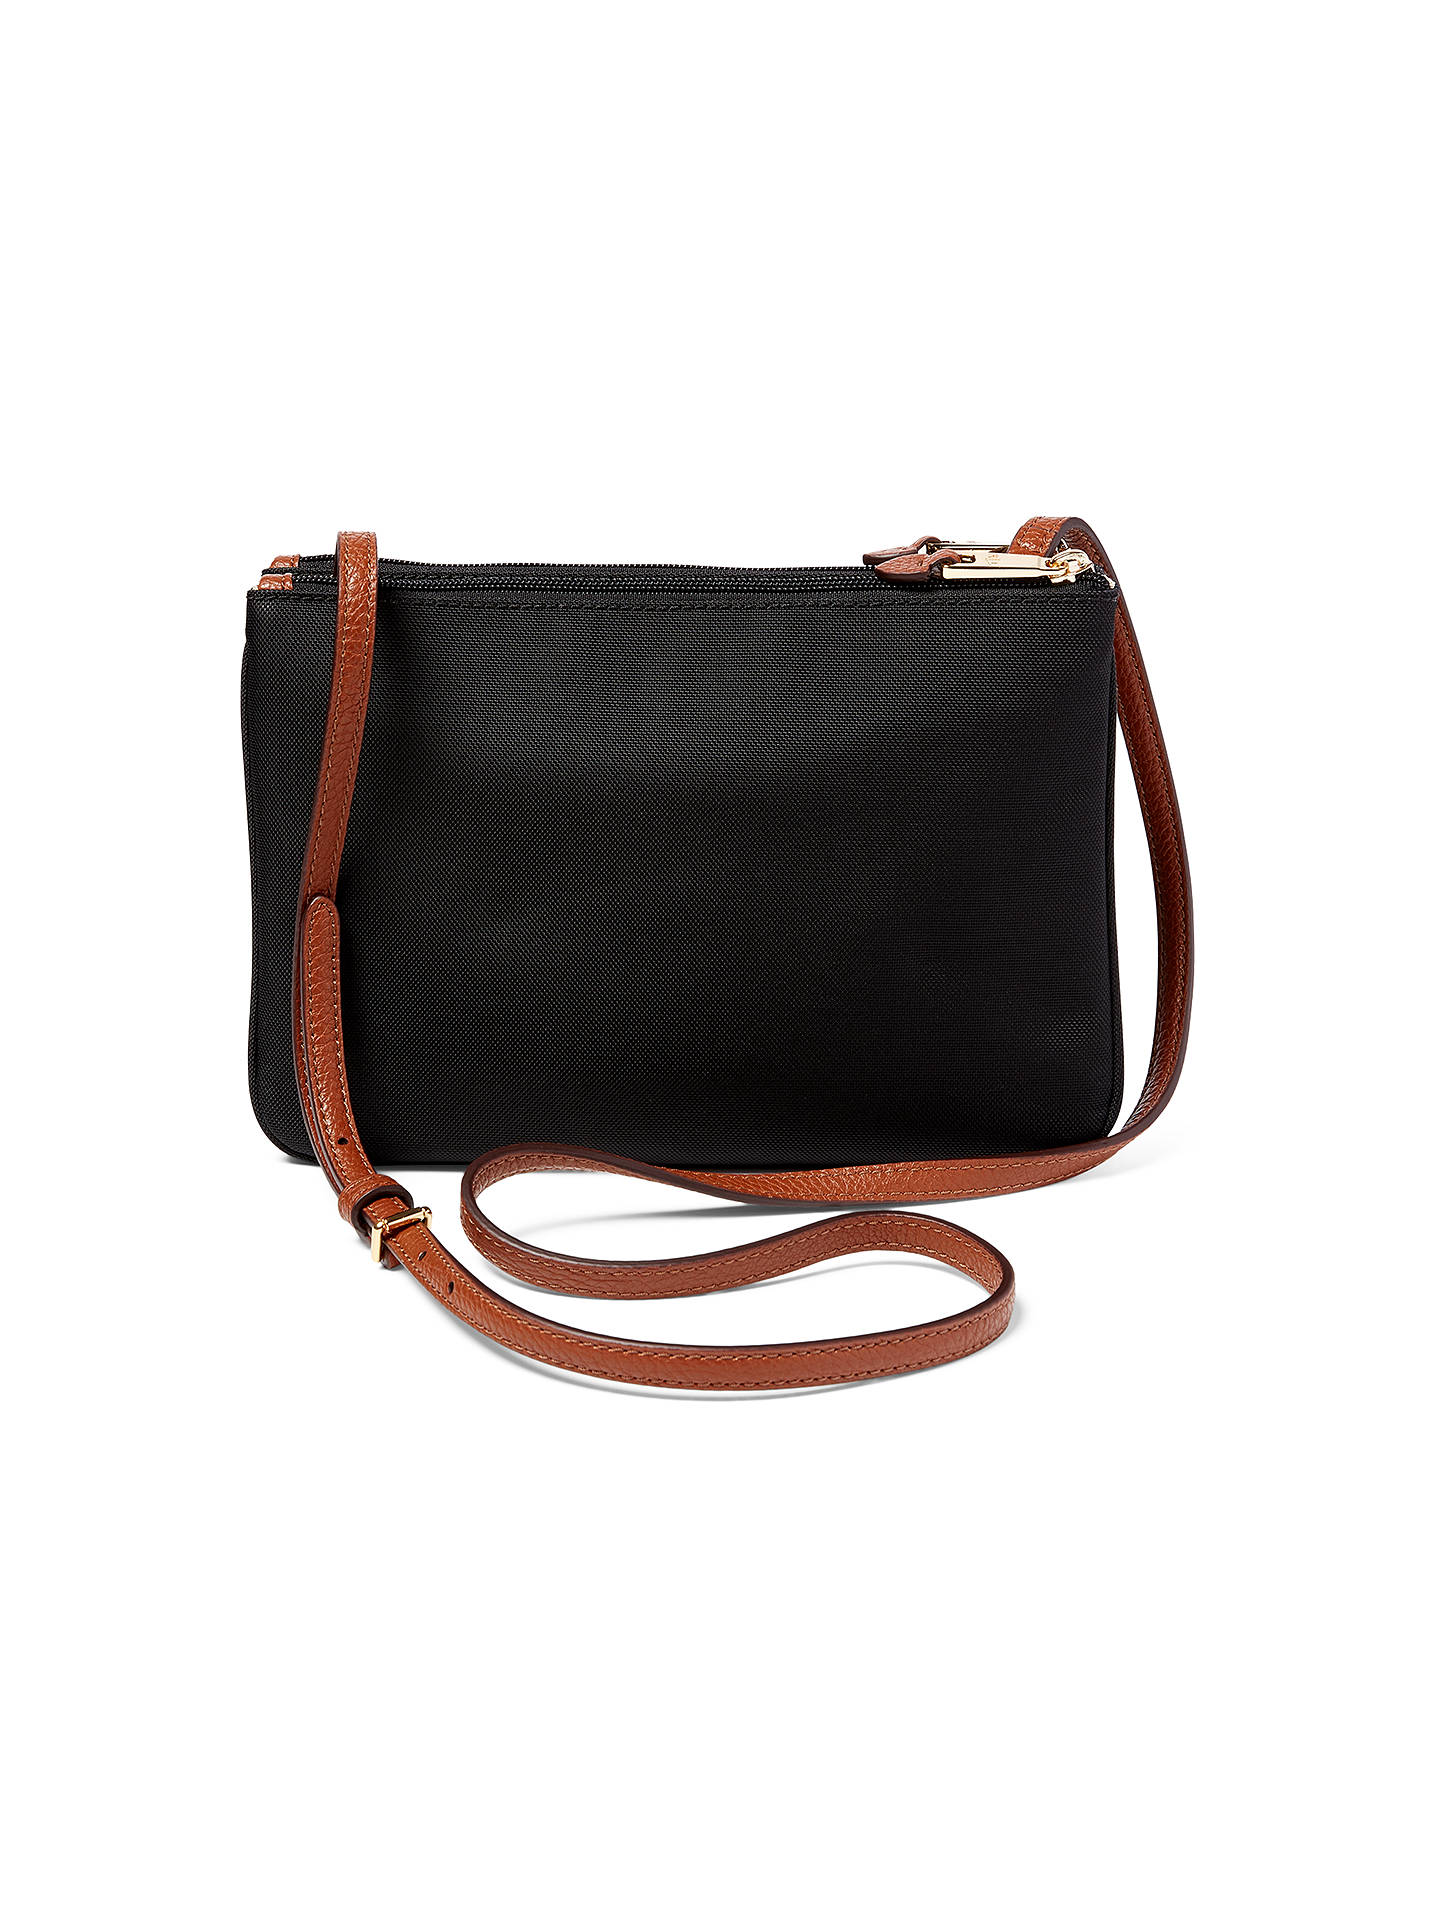 e5f2d1ac38f ... BuyLauren Ralph Lauren Tara Cross Body Bag, Black Online at  johnlewis.com ...